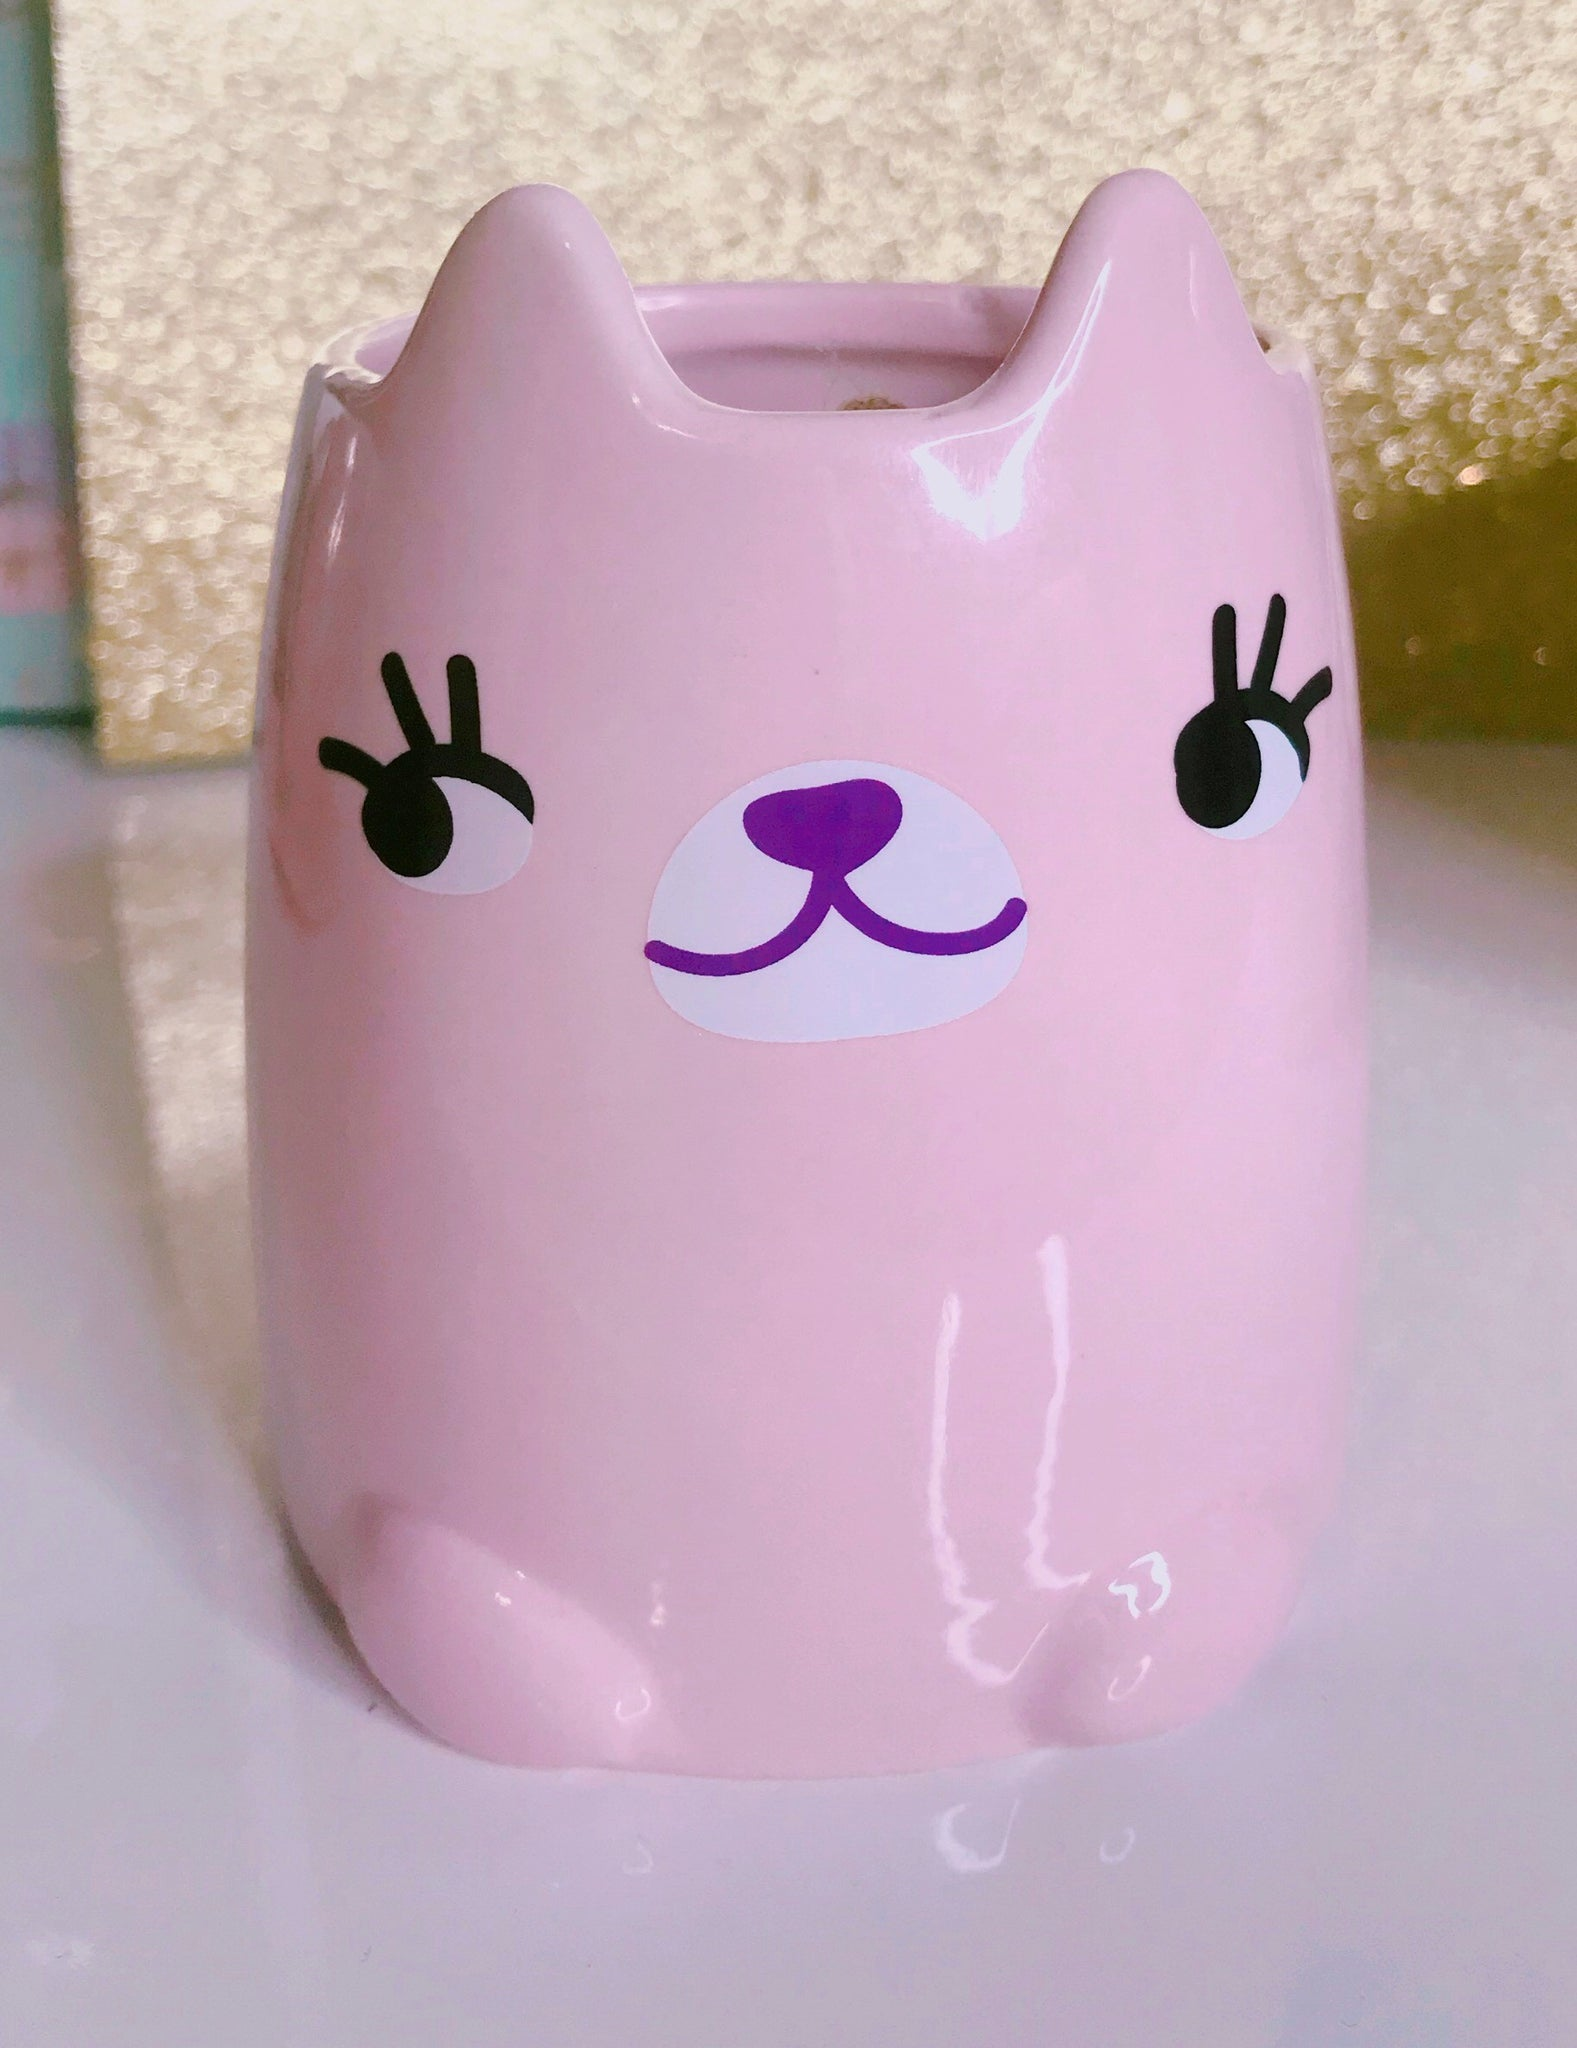 Kitty cat blush pink cup holder - Classy Pink Boutique